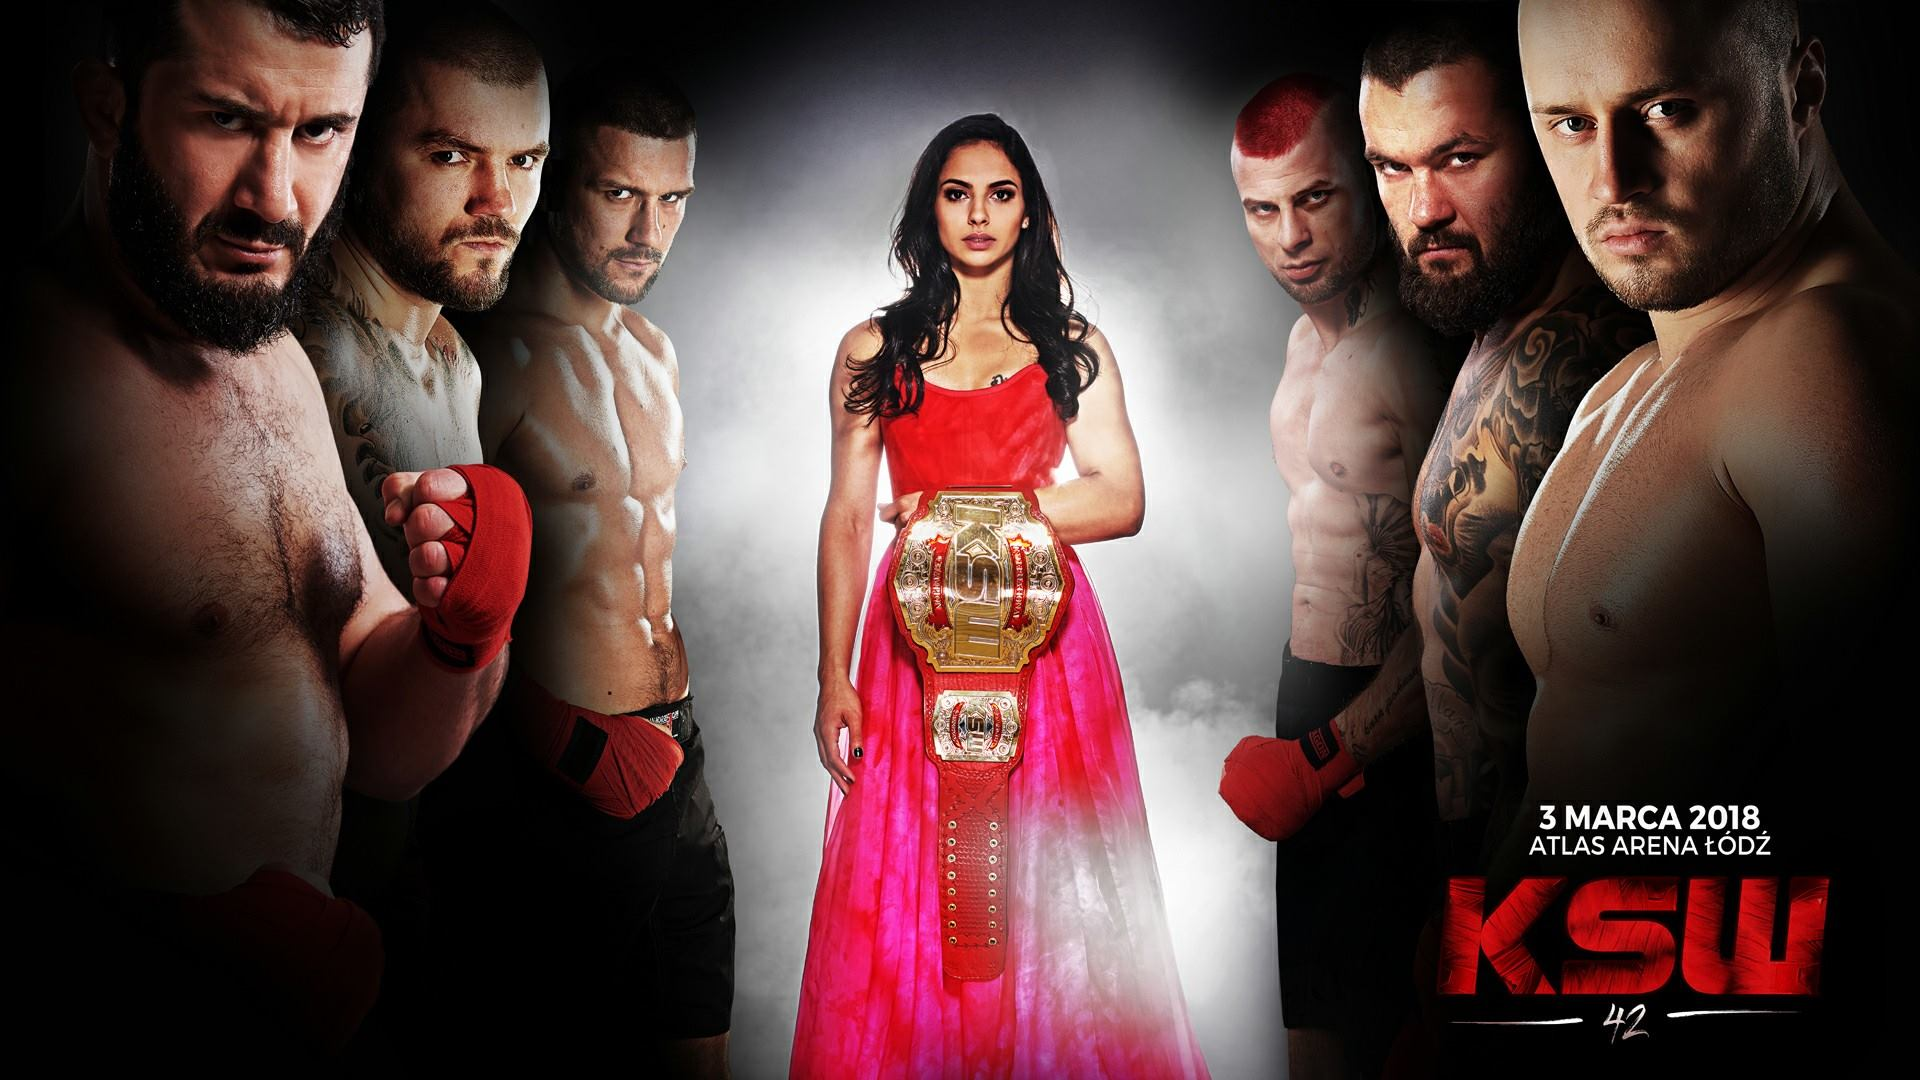 KSW 42 Fight Card -